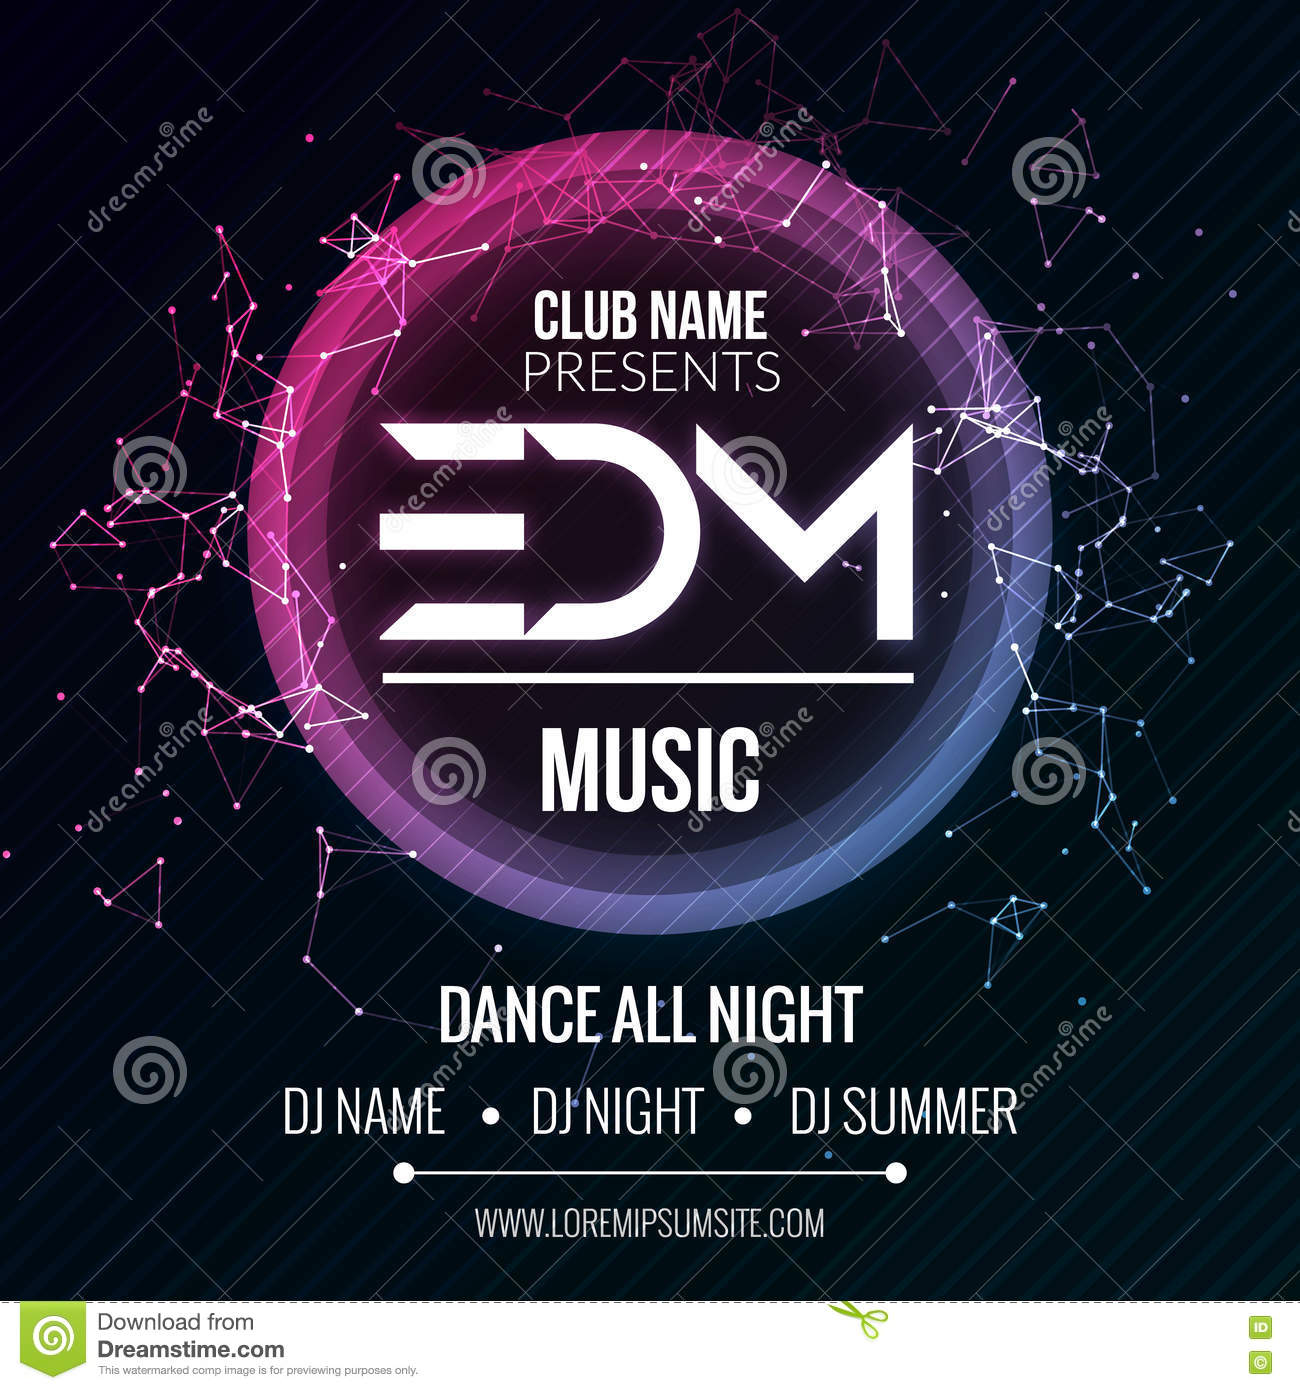 Edm club music party template dance party flyer brochure night edm club music party template dance party flyer brochure night party club sound banner poster saigontimesfo